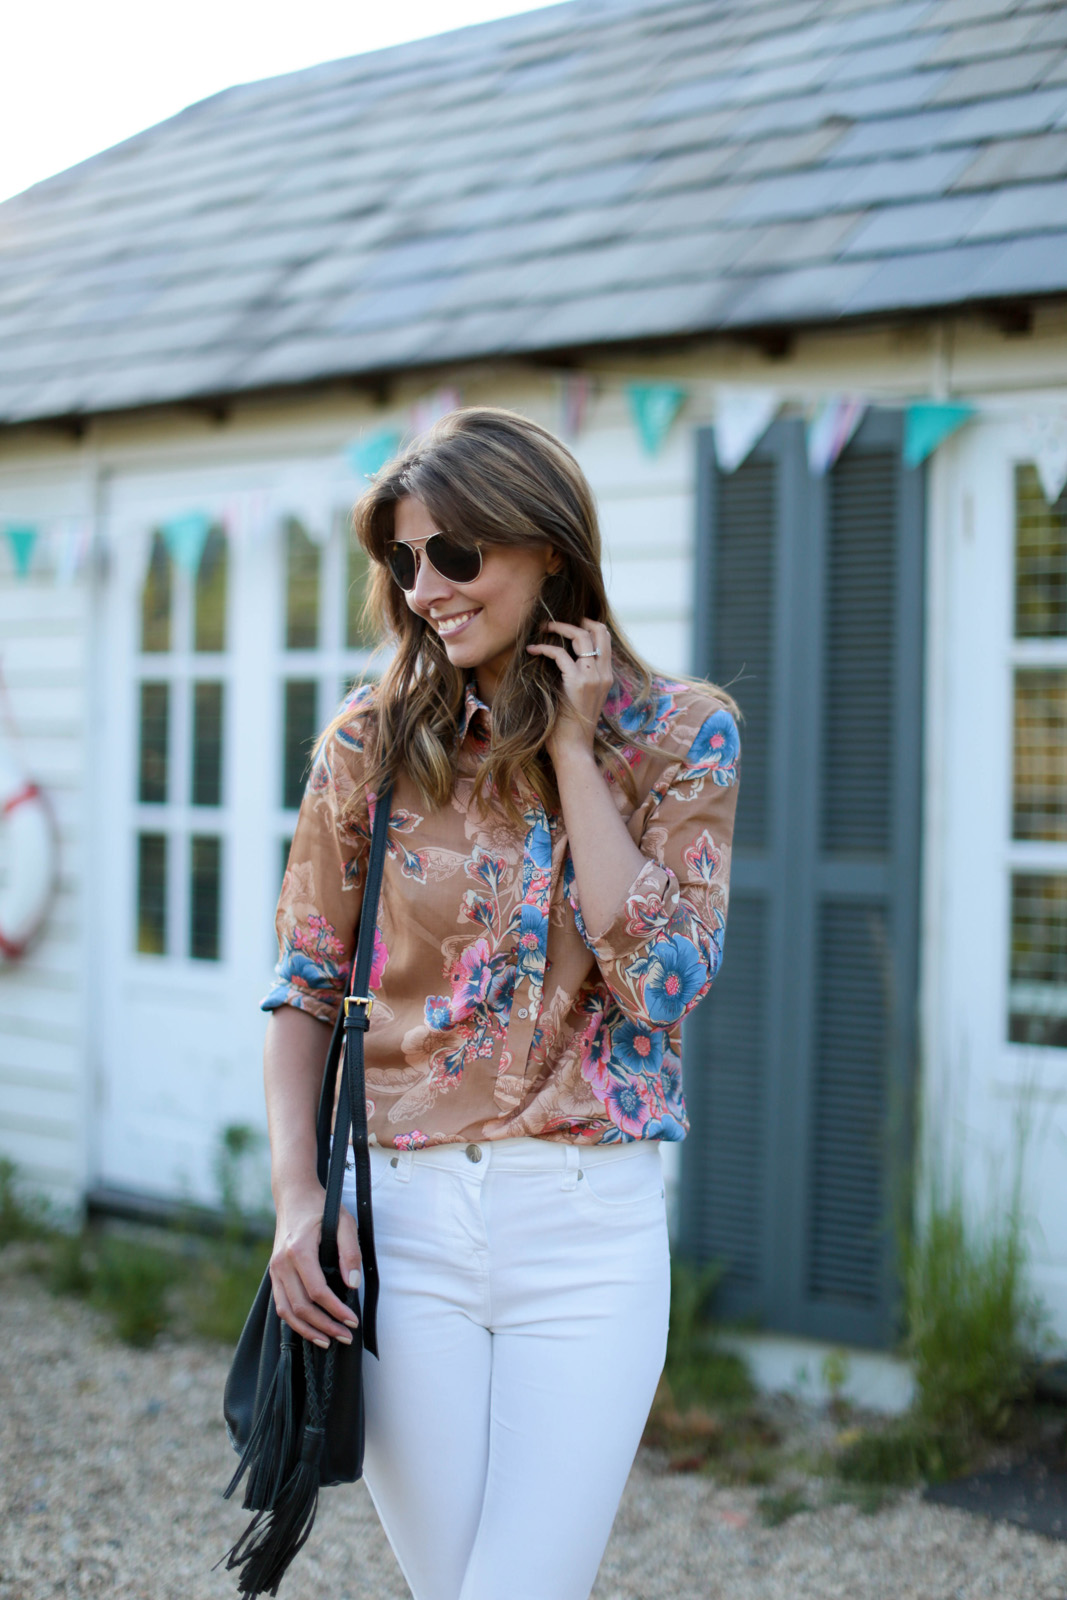 EJSTYLE - Emma Hill wears Next white skinny jeans, 70s retro floral print shirt, aviator sunglasses, black bucket bag with tassel tie, OOTD, Nextbloggerisland